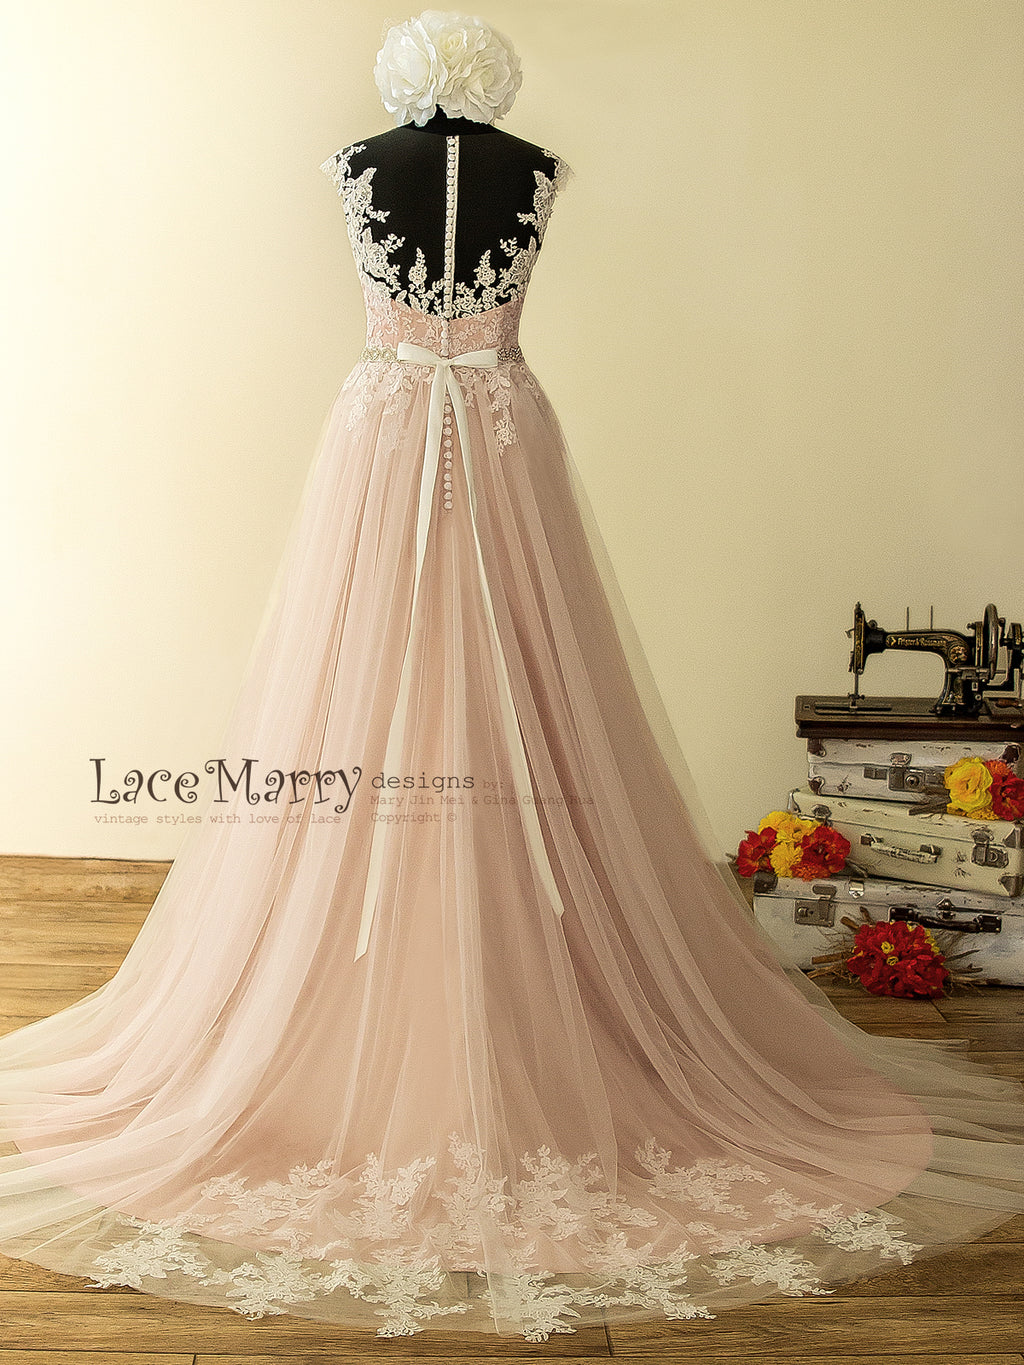 26536d179243 ... Illusion Champagne Dusty Pink Wedding Dress with Airy Tulle Skirt and  Rose Flower Lace Appliqué